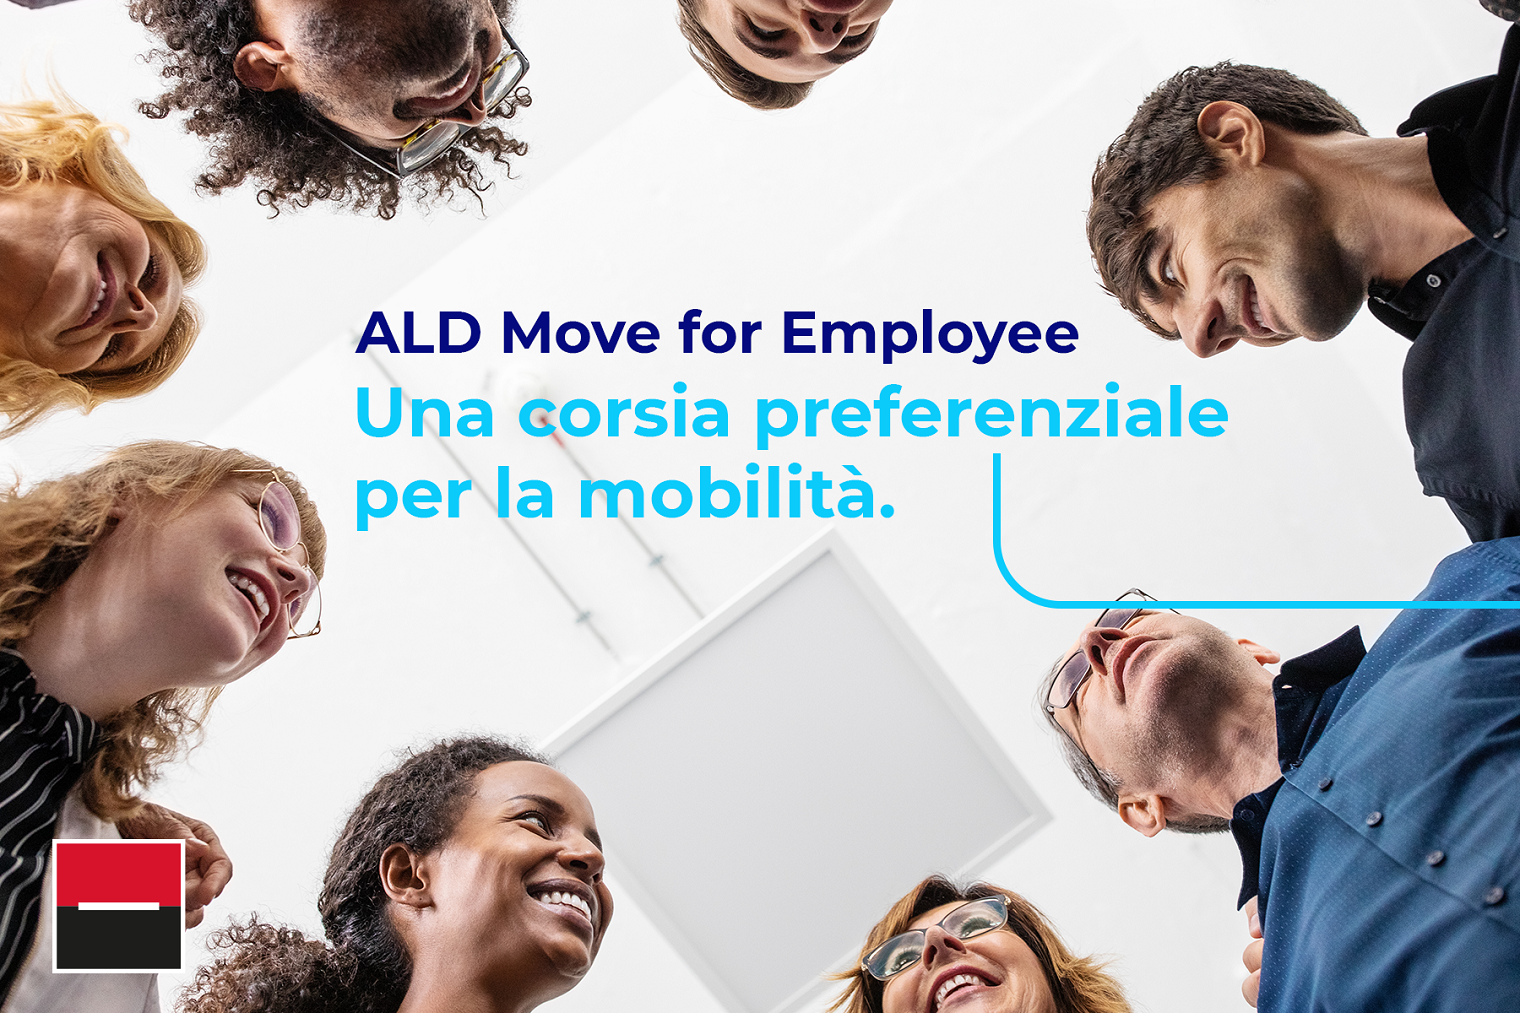 ALD Move for Employee